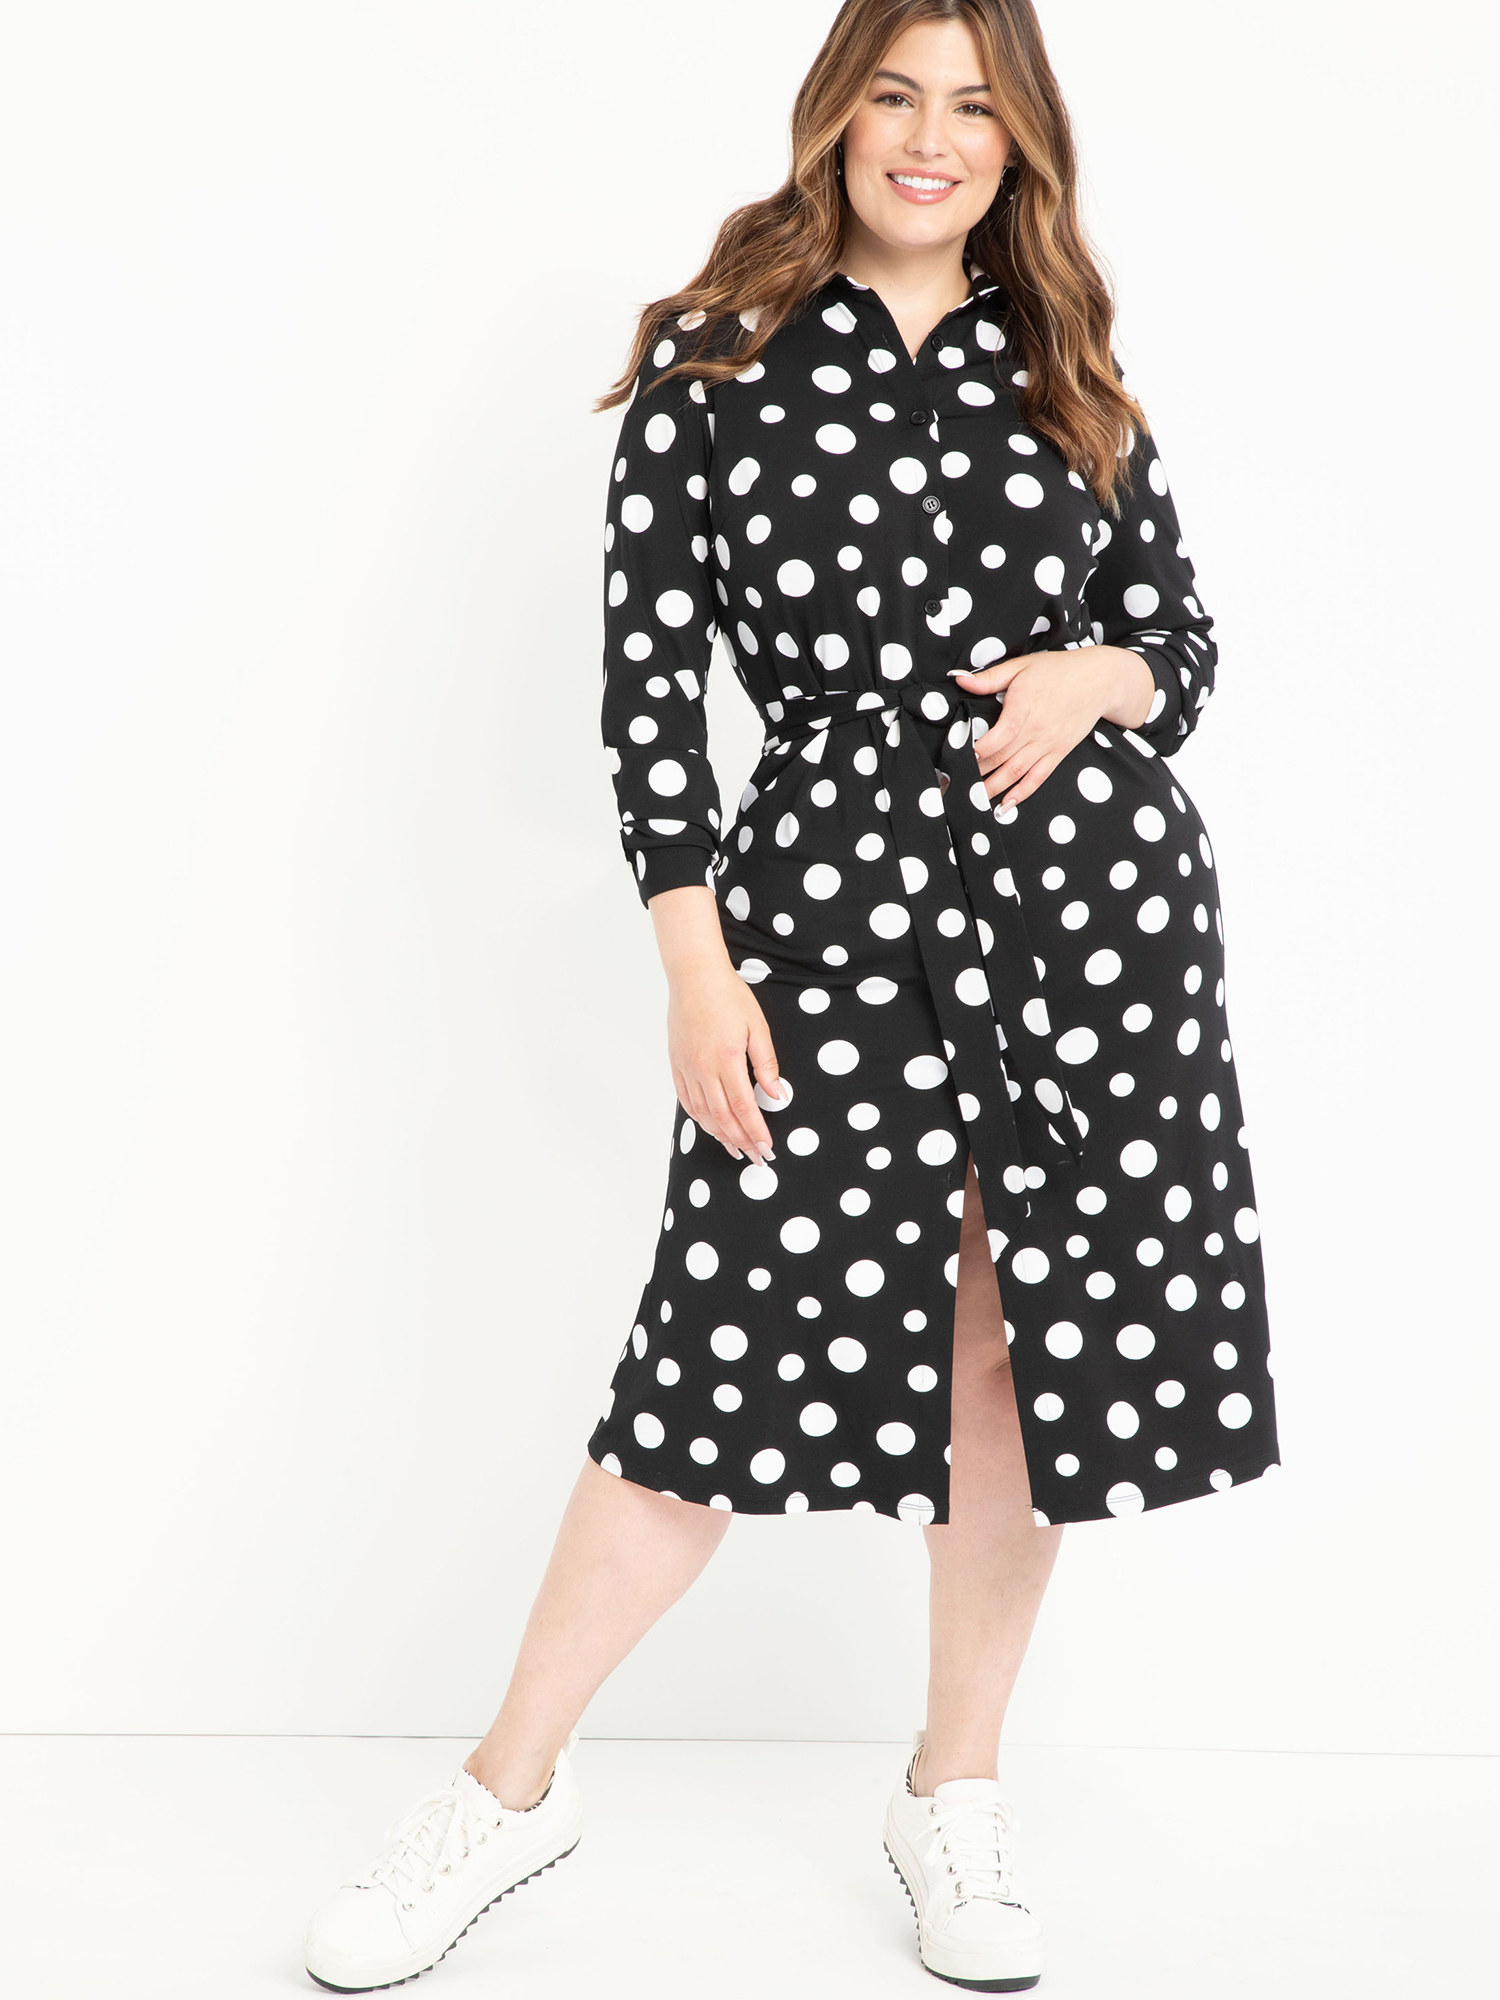 Model wearing black and white polka dot dress with white shoes